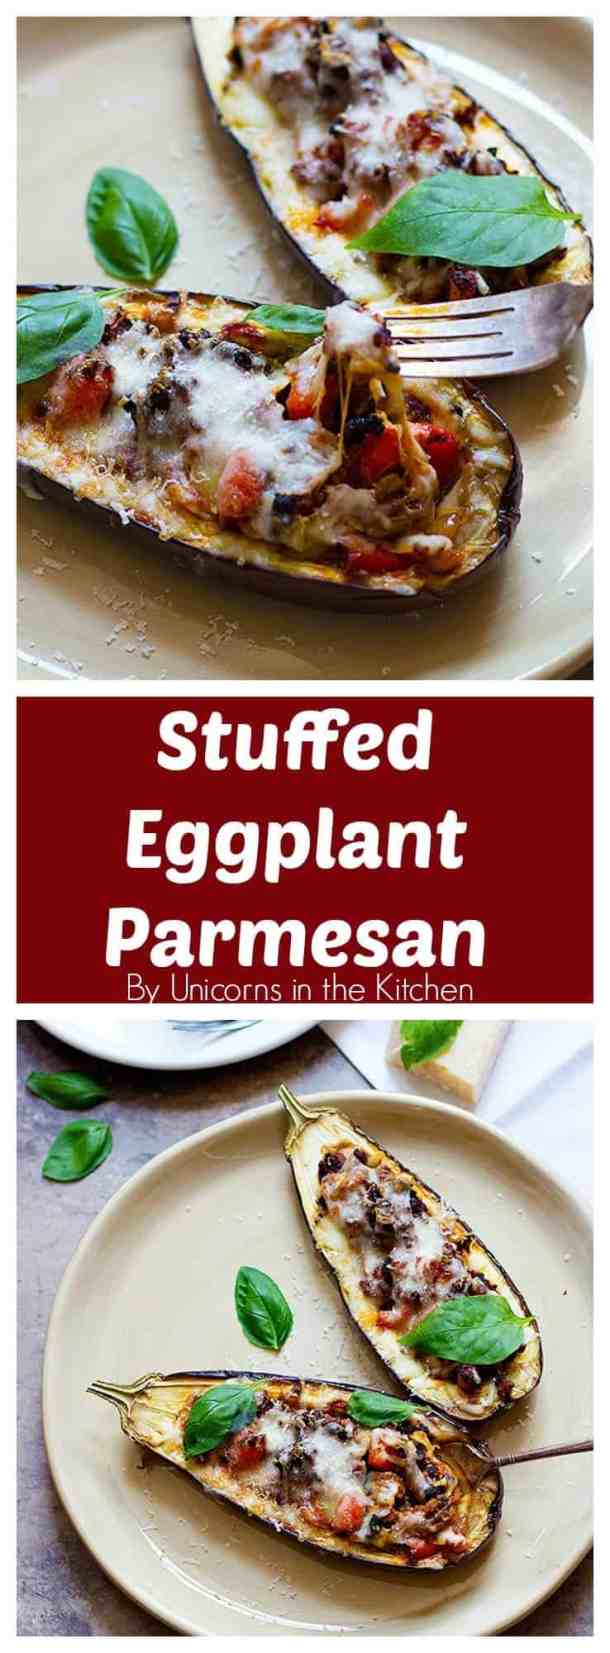 Stuffed Eggplant Parmesan is a great choice for dinner. Meaty eggplants that are filled with ground beef and topped with two types of cheese, who can say no to this?